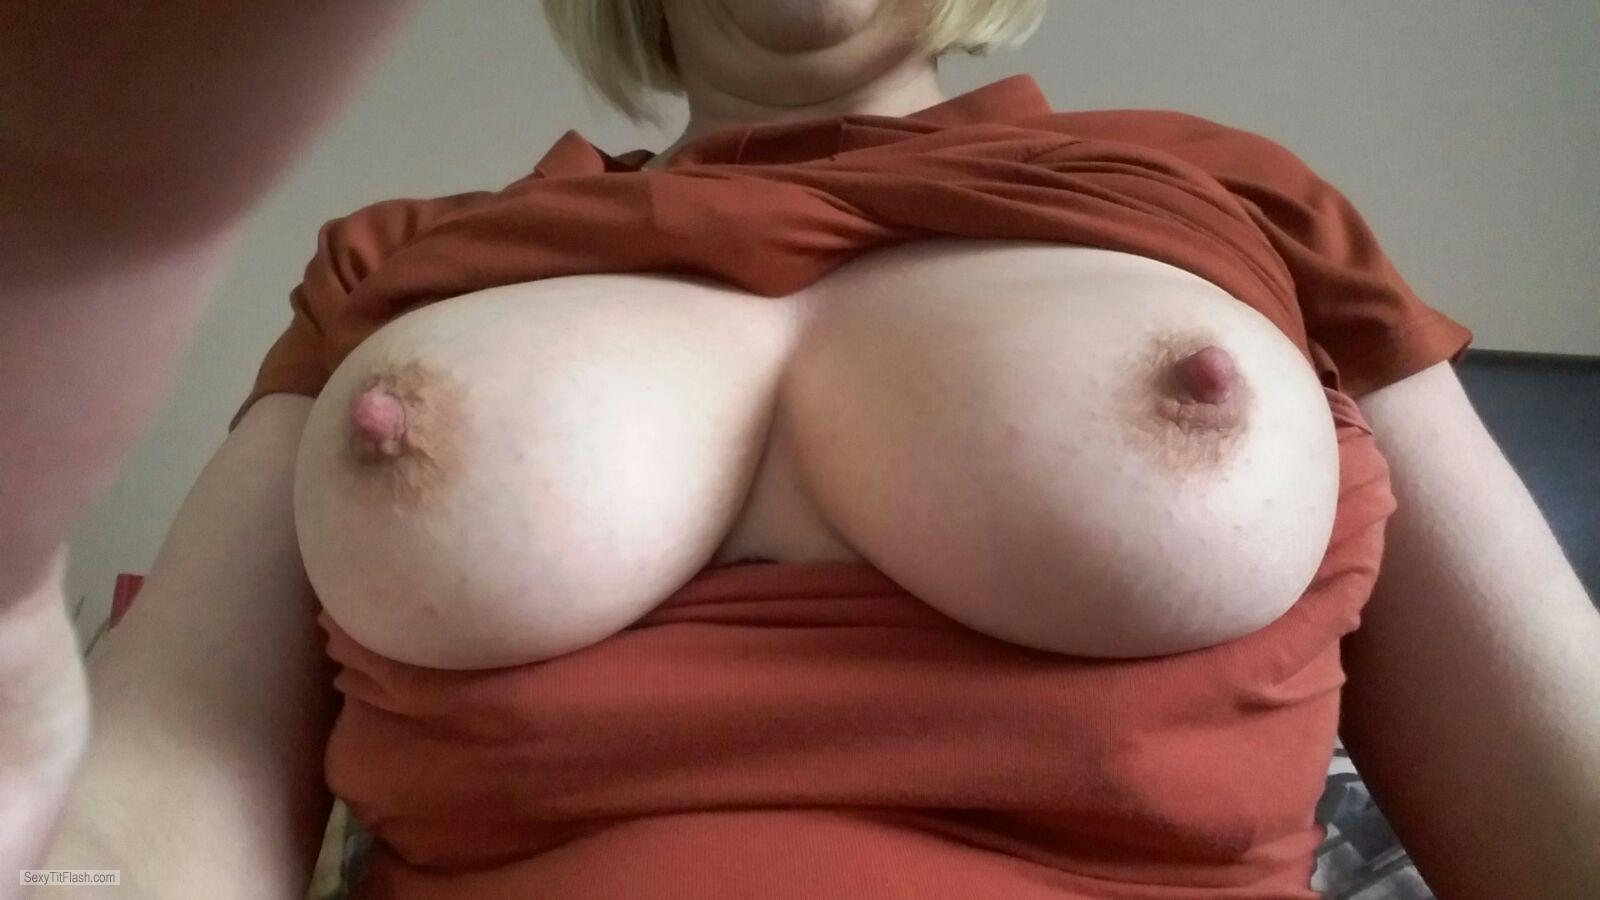 Tit Flash: My Medium Tits (Selfie) - Ellens Boobs, Late Forties from United Kingdom